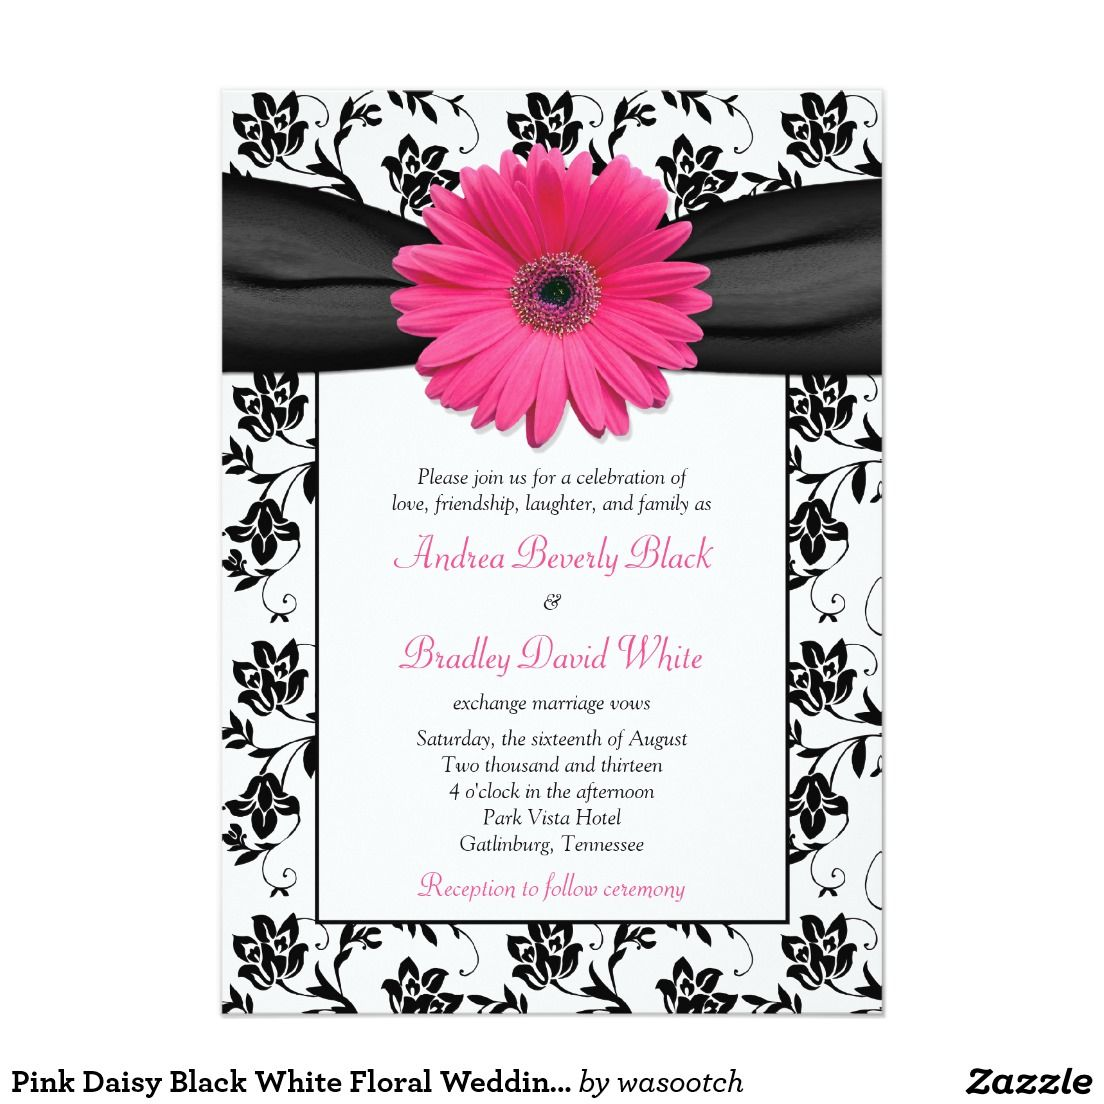 Pink Daisy Black White Floral Wedding Invitation | Pink daisy ...